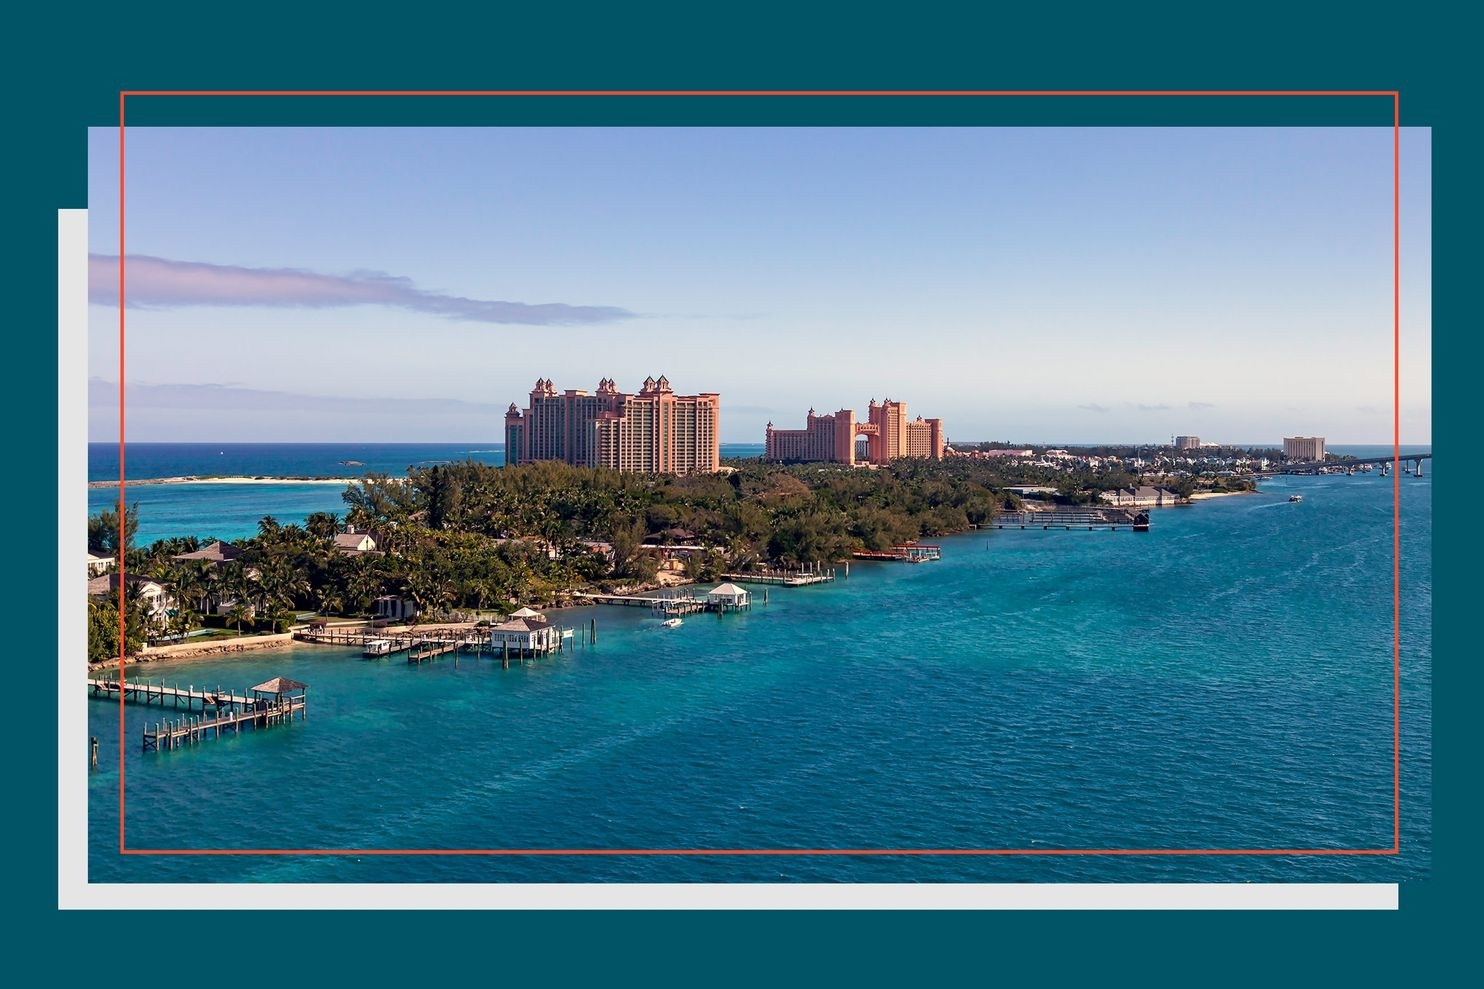 After Hurricane Dorian, Bahamas Ask Tourists To Return - The pertaining to Traveling To The Bahamas Right Now